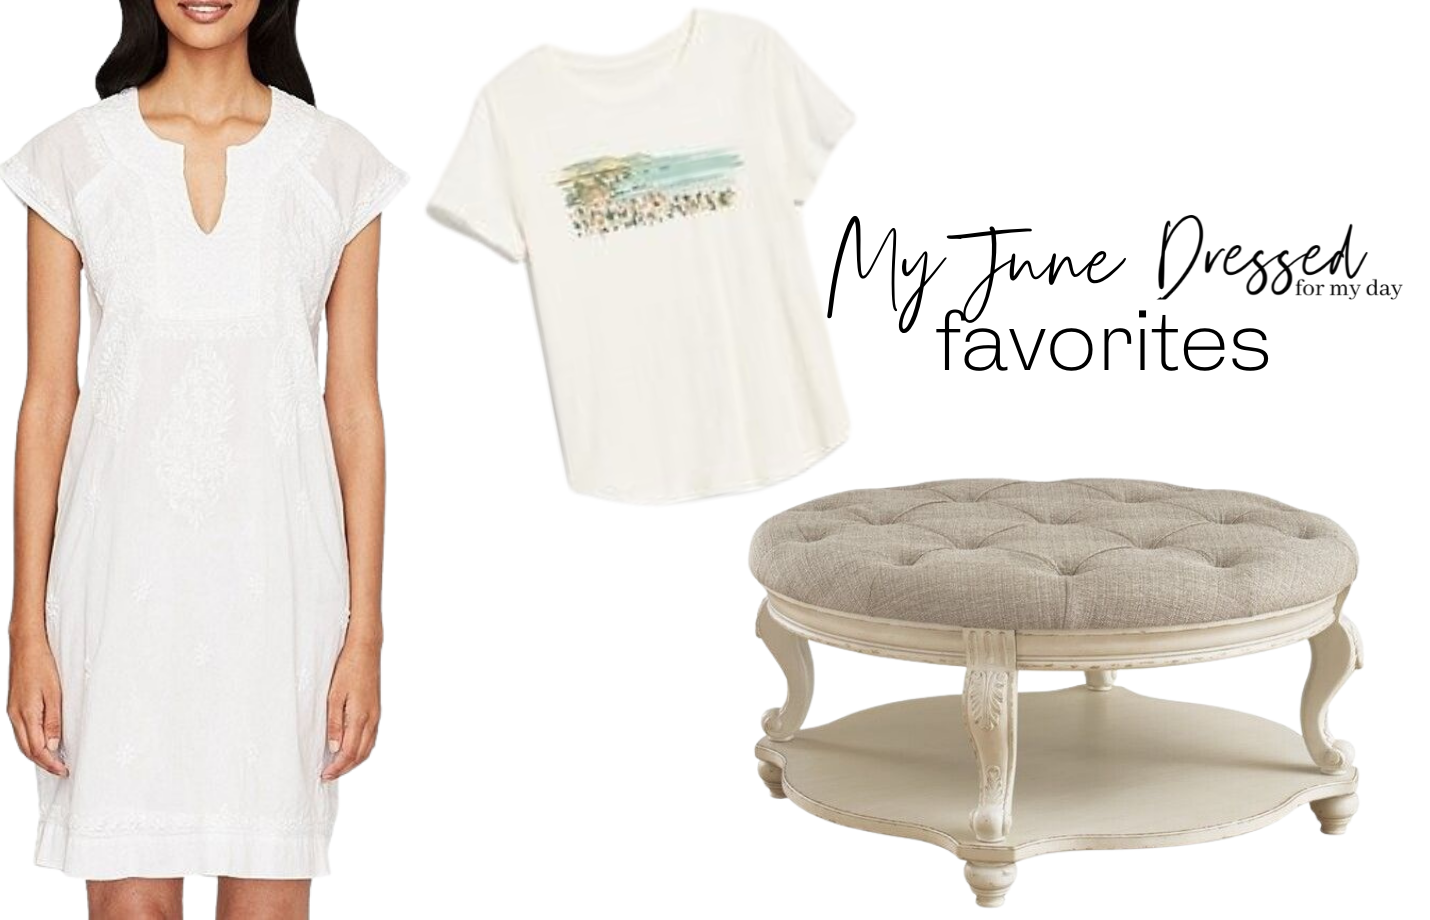 My June Dressed for My Day Favorites (1)